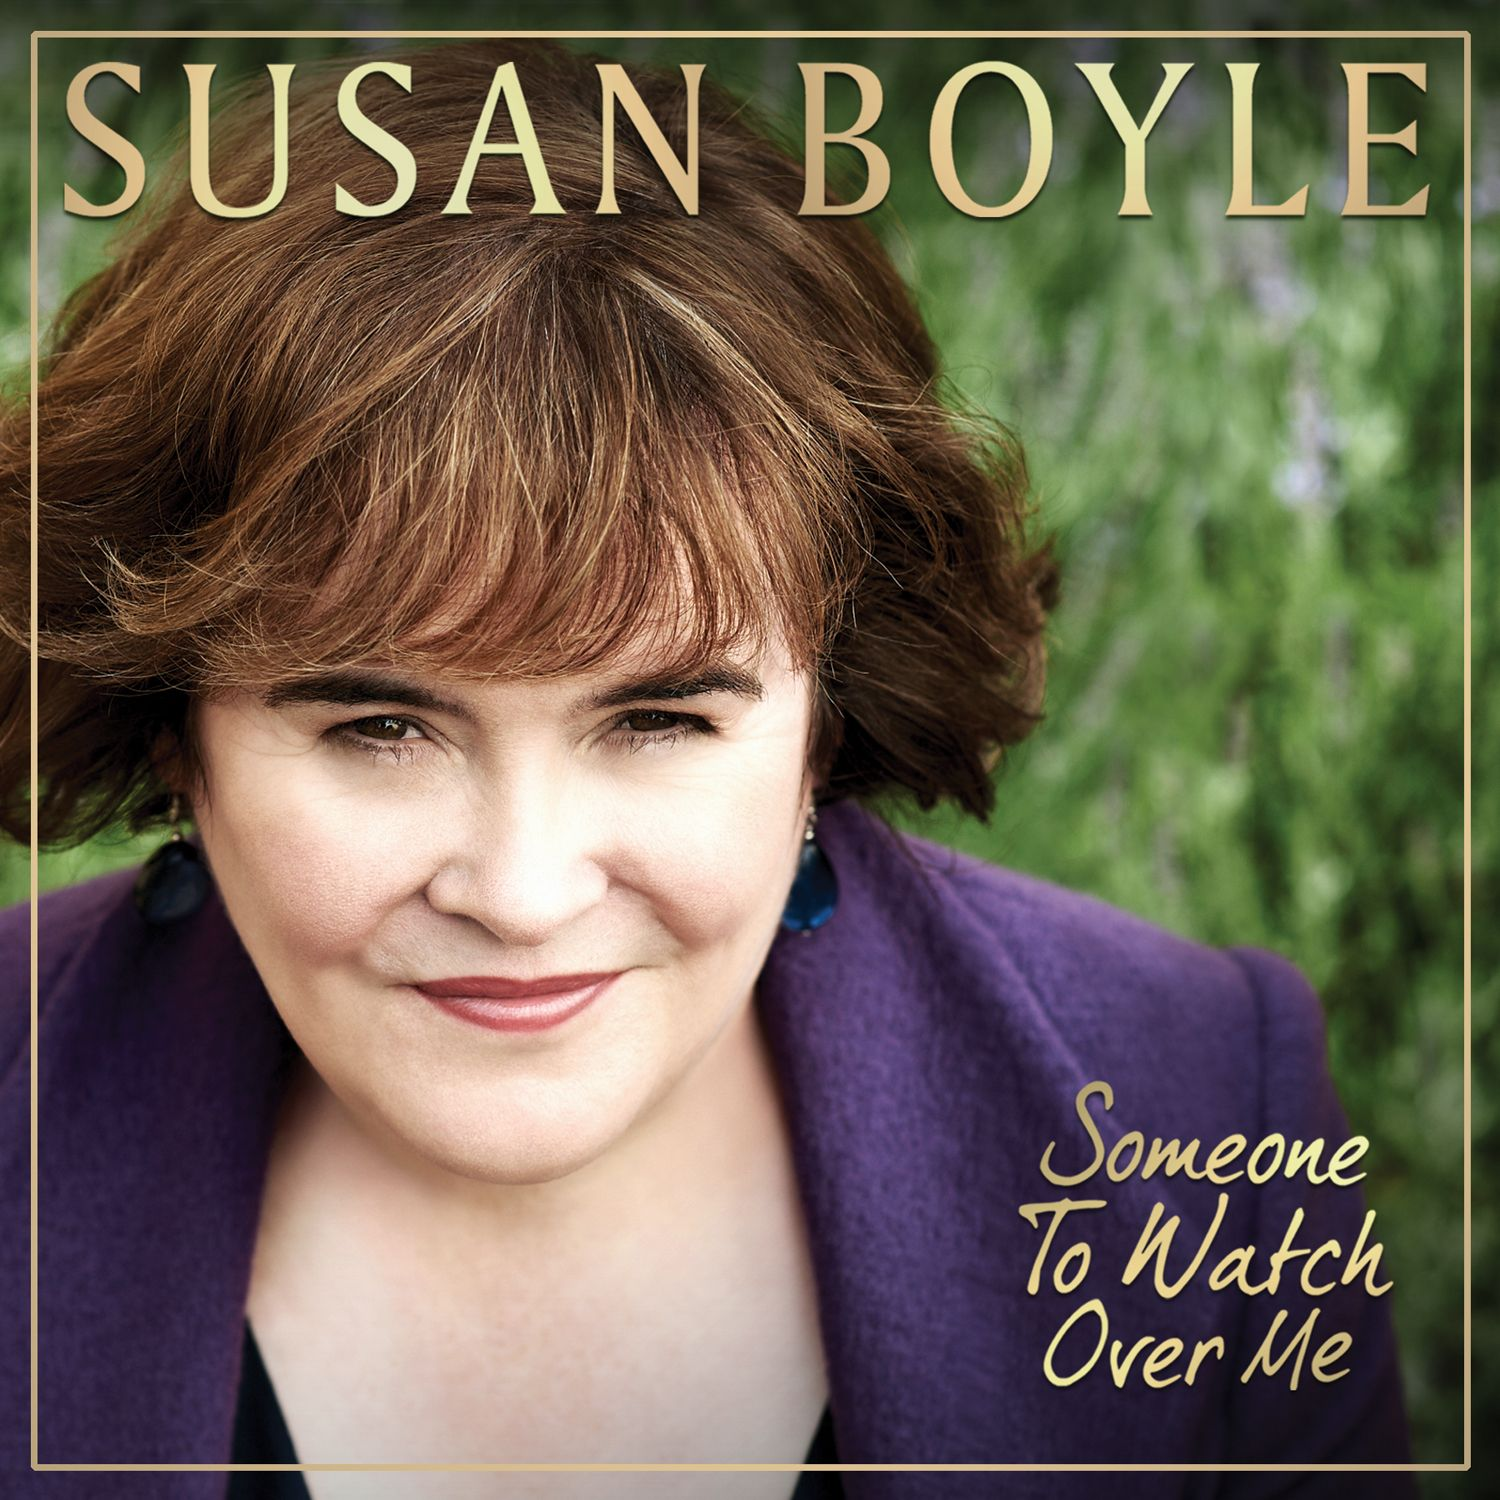 Susan Boyle - Someone To Watch Over Me album cover